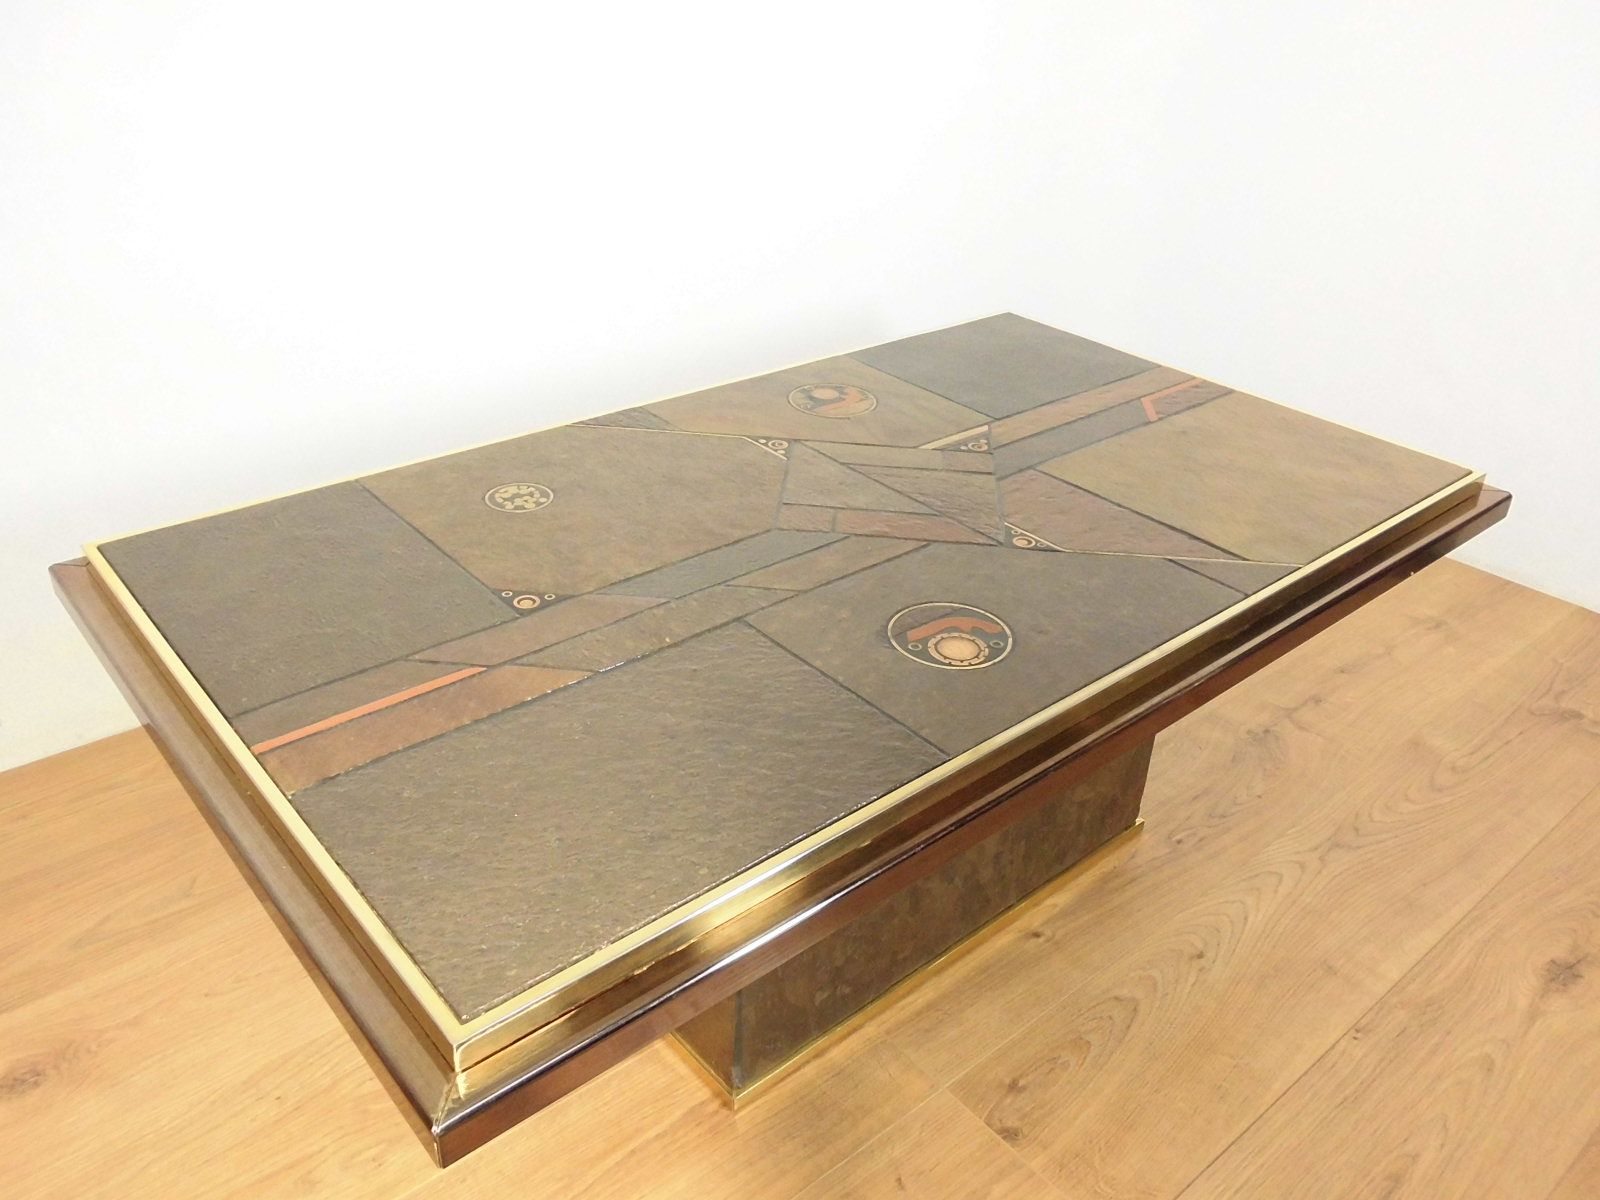 table basse en pierre et en bronze par paul kingma 1970. Black Bedroom Furniture Sets. Home Design Ideas